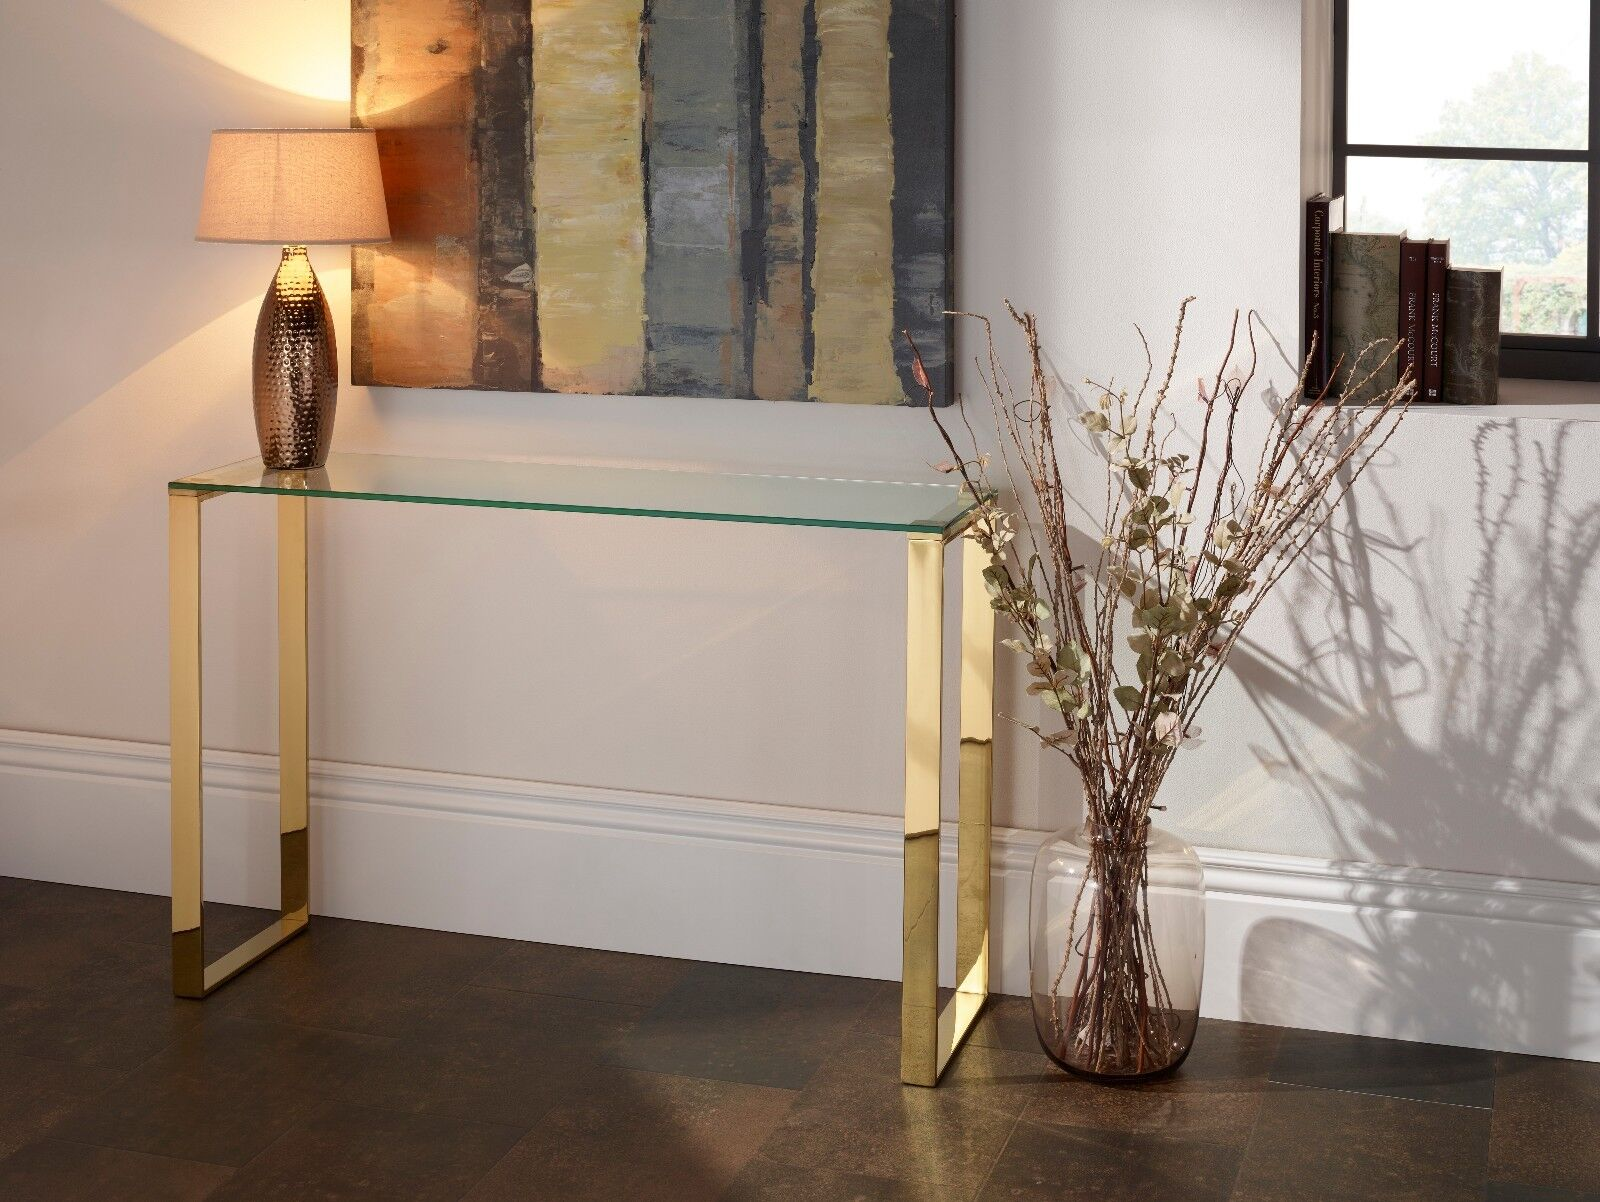 asger glass top console table in steel gold or rose gold metal frame